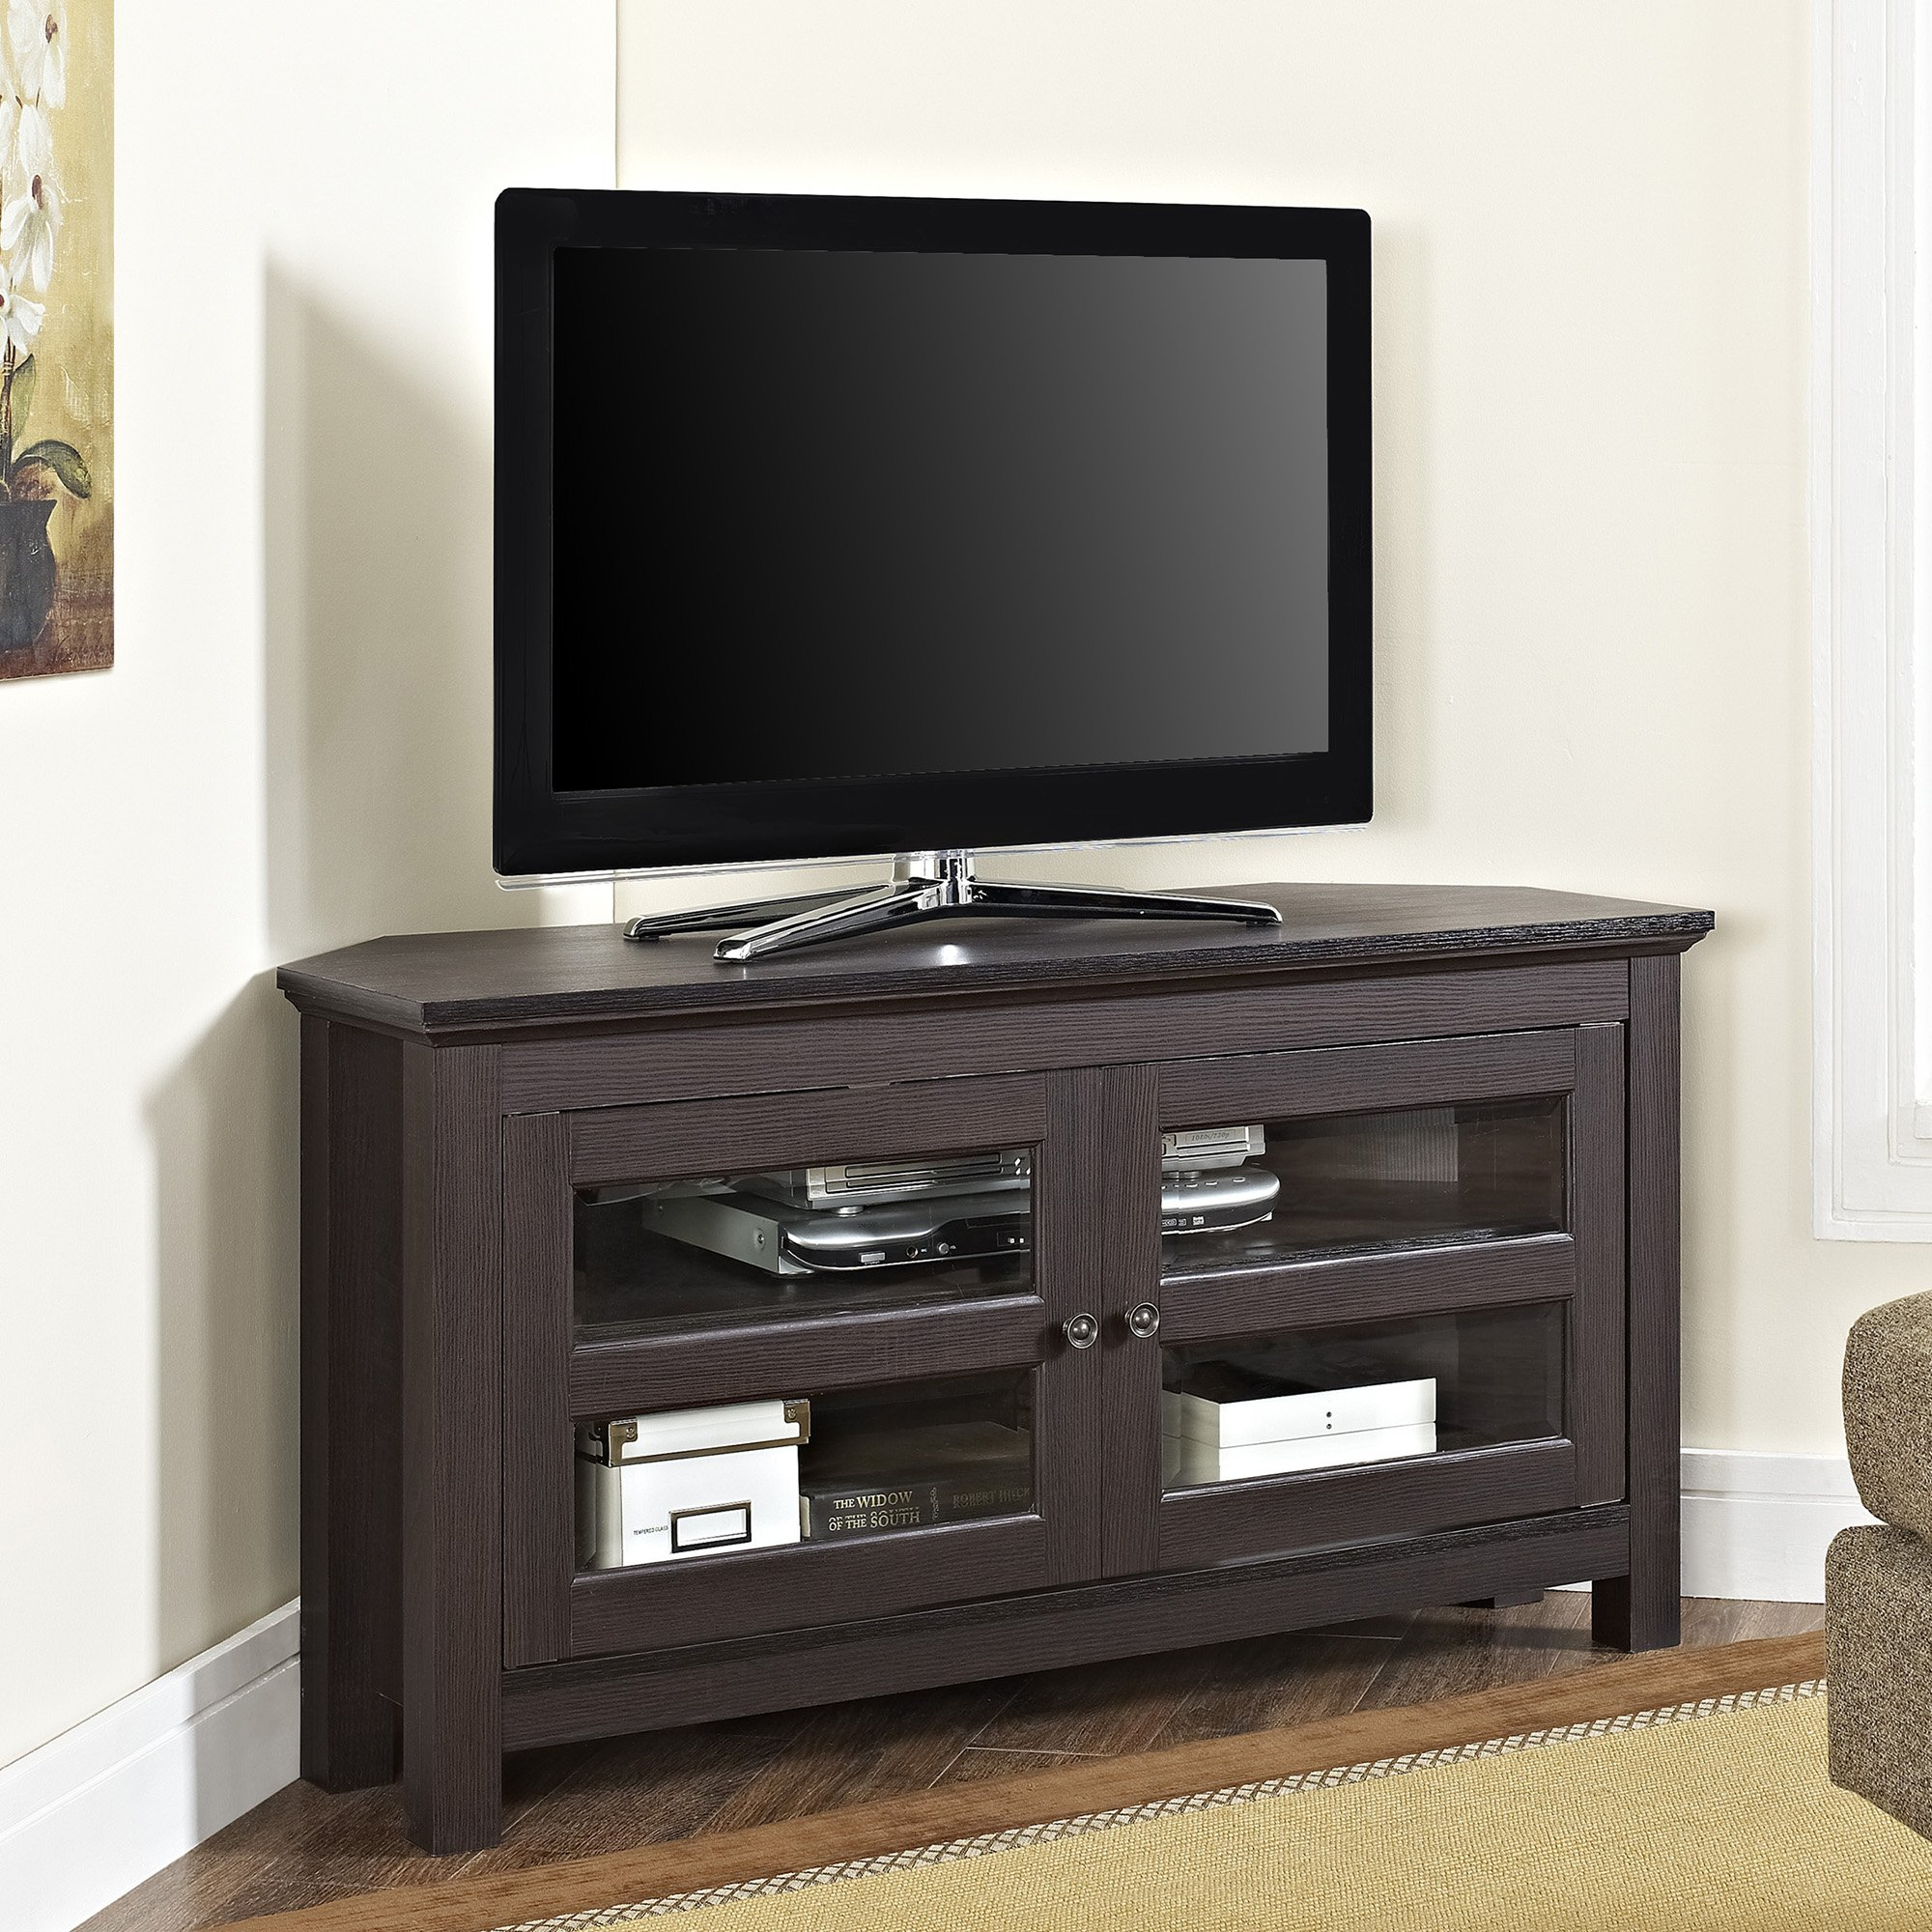 WE Furniture Modern Farmhouse Wood Corner TV Stand for TV's up to 48'' Living Room Storage by WE Furniture